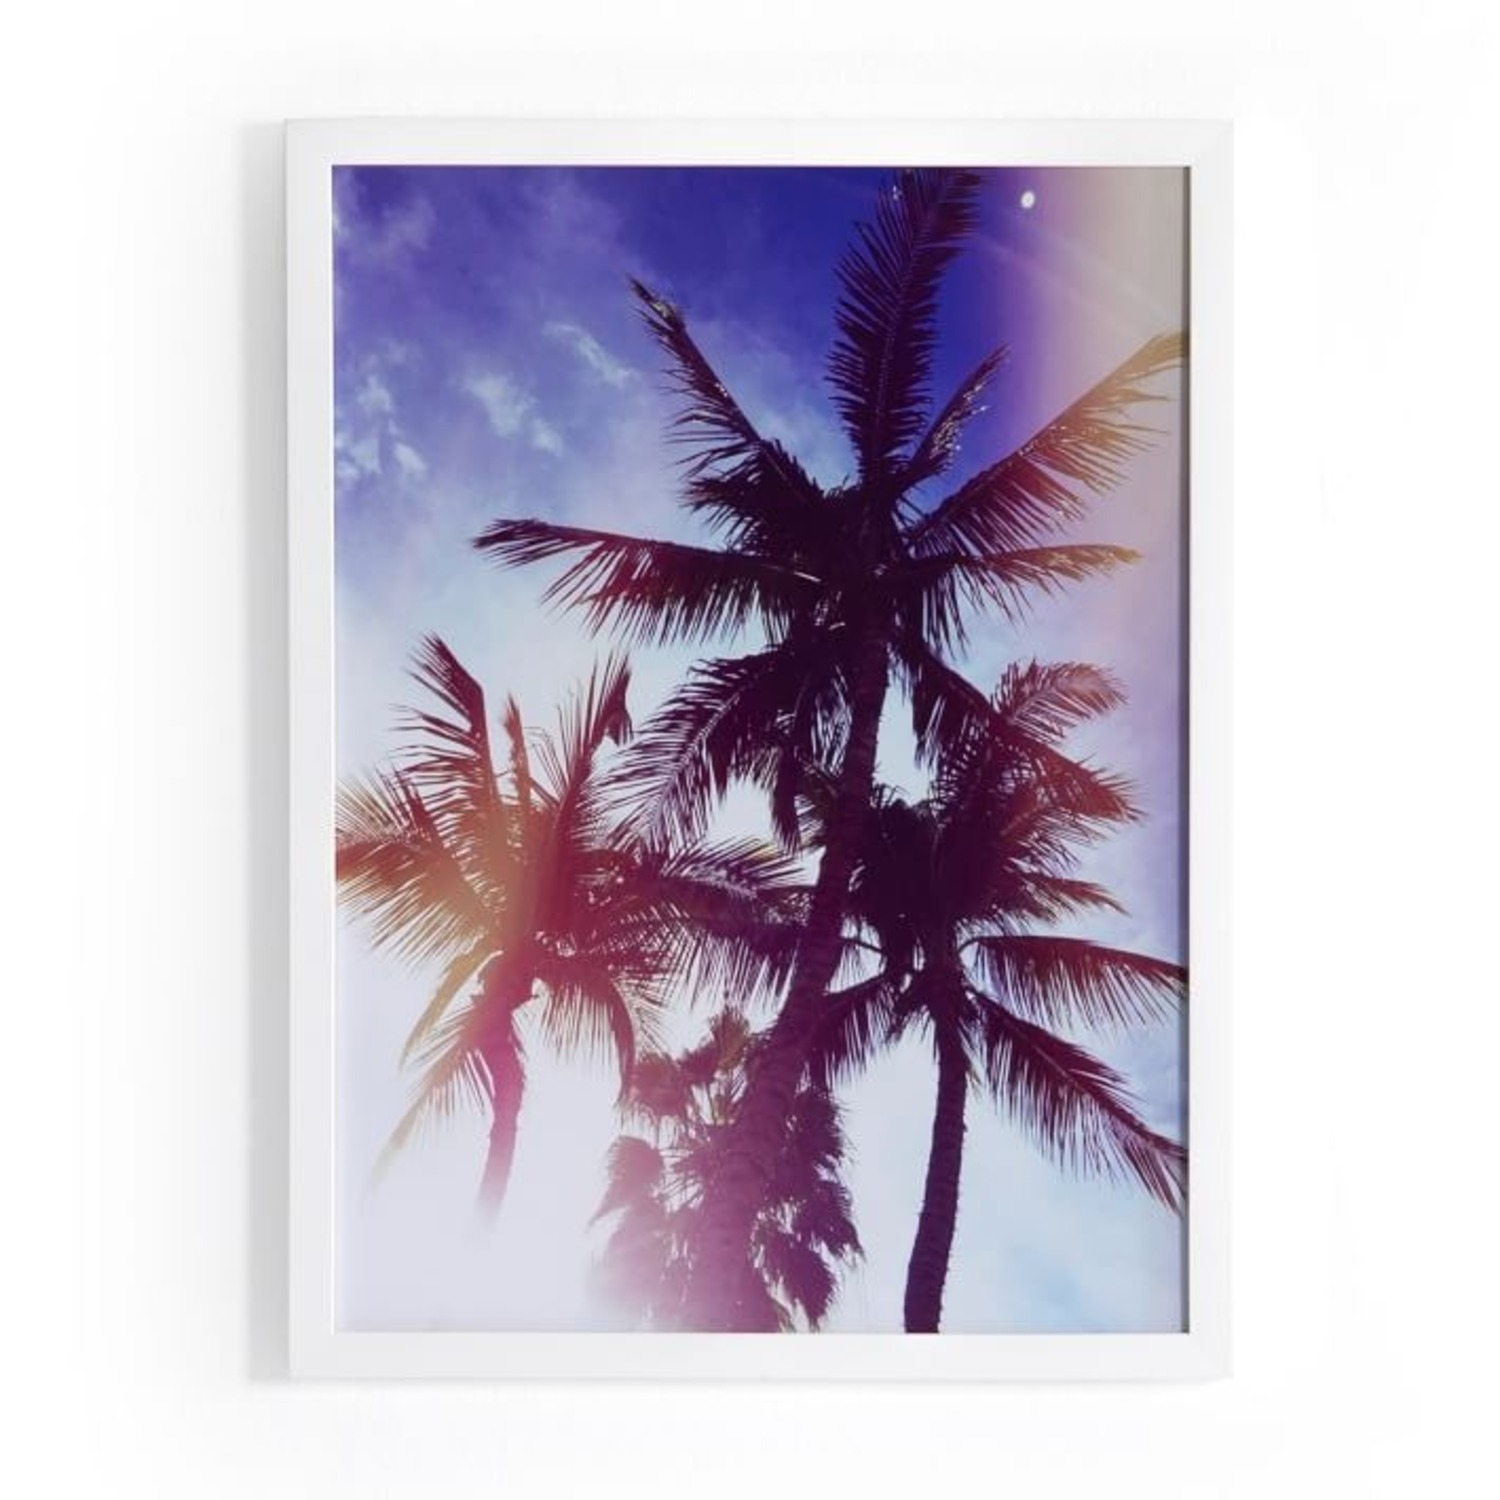 West Elm Palm Trees III by Erica Singleton - image-3